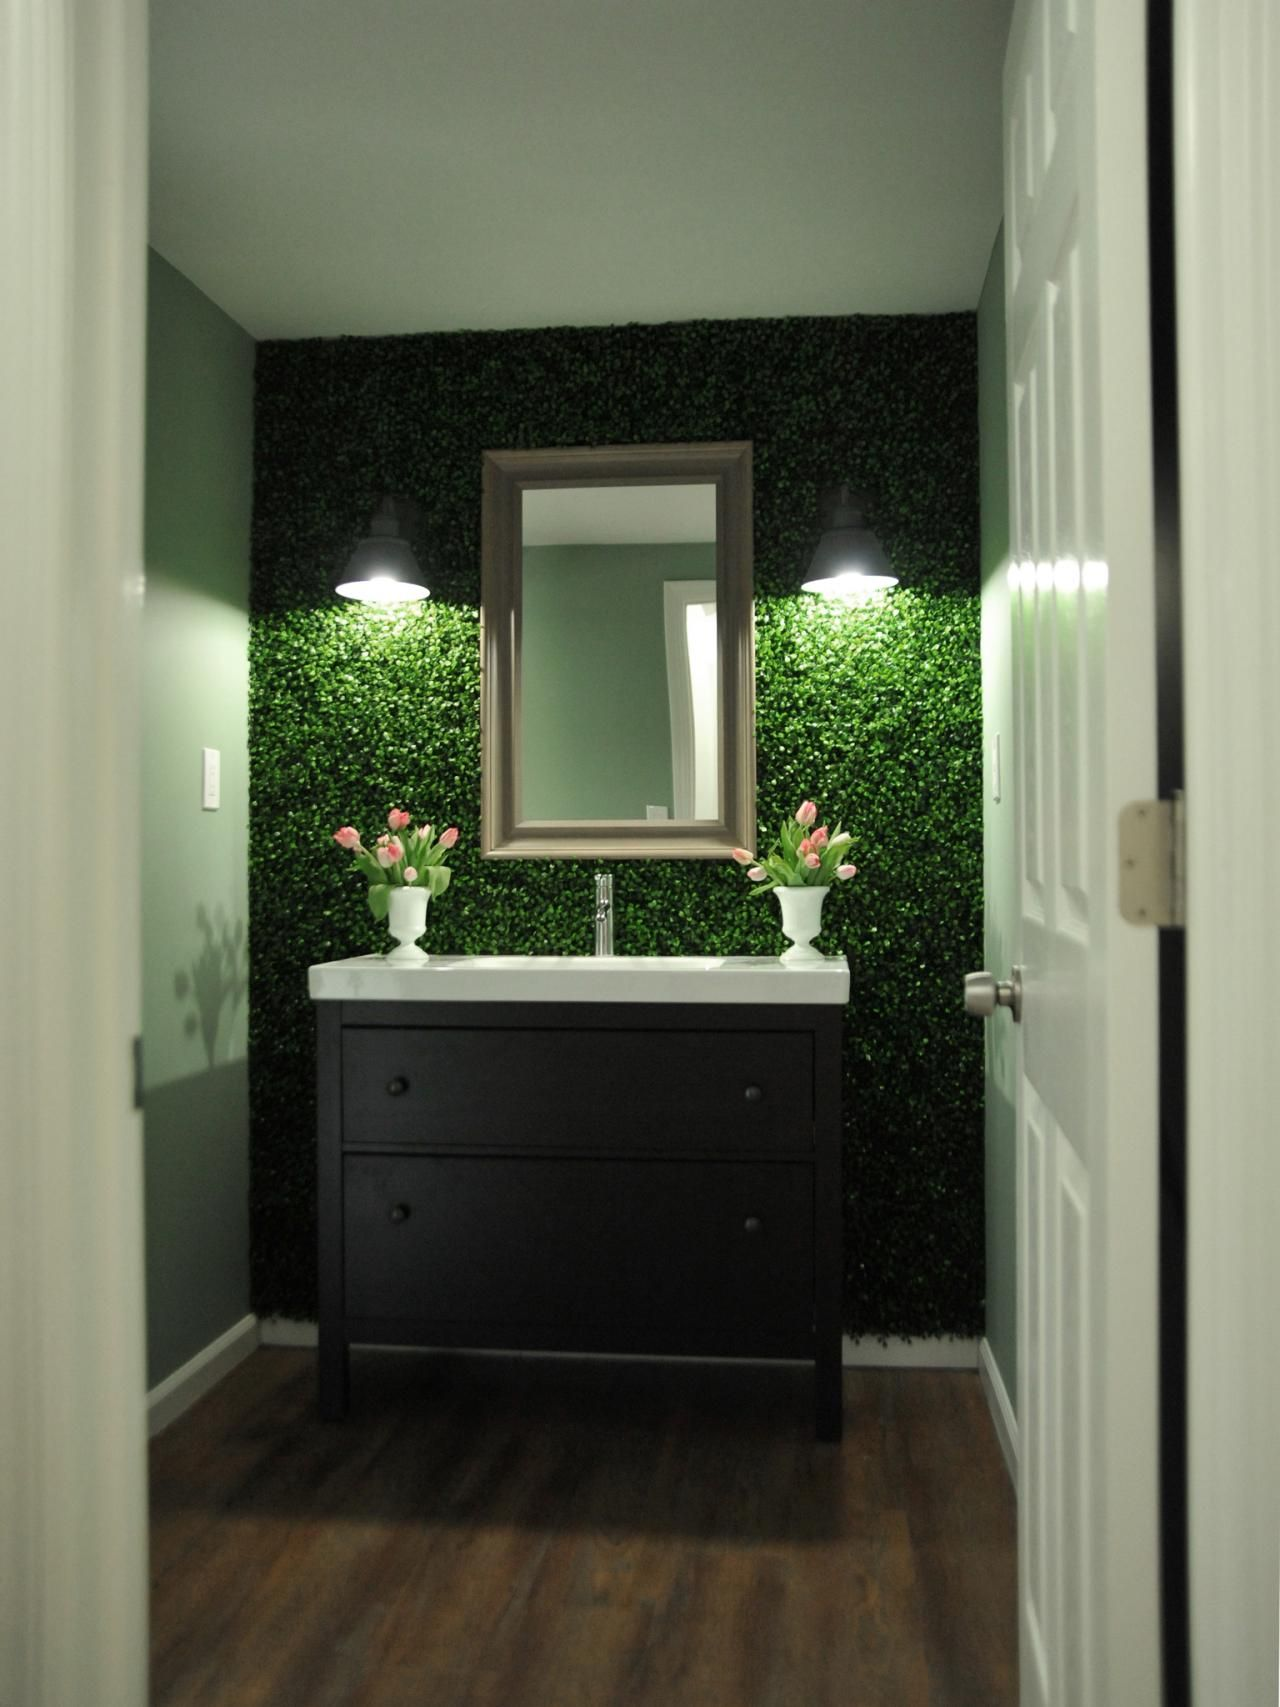 Panels Of Faux Boxwood Leaves Offer An Earthy Feel To The